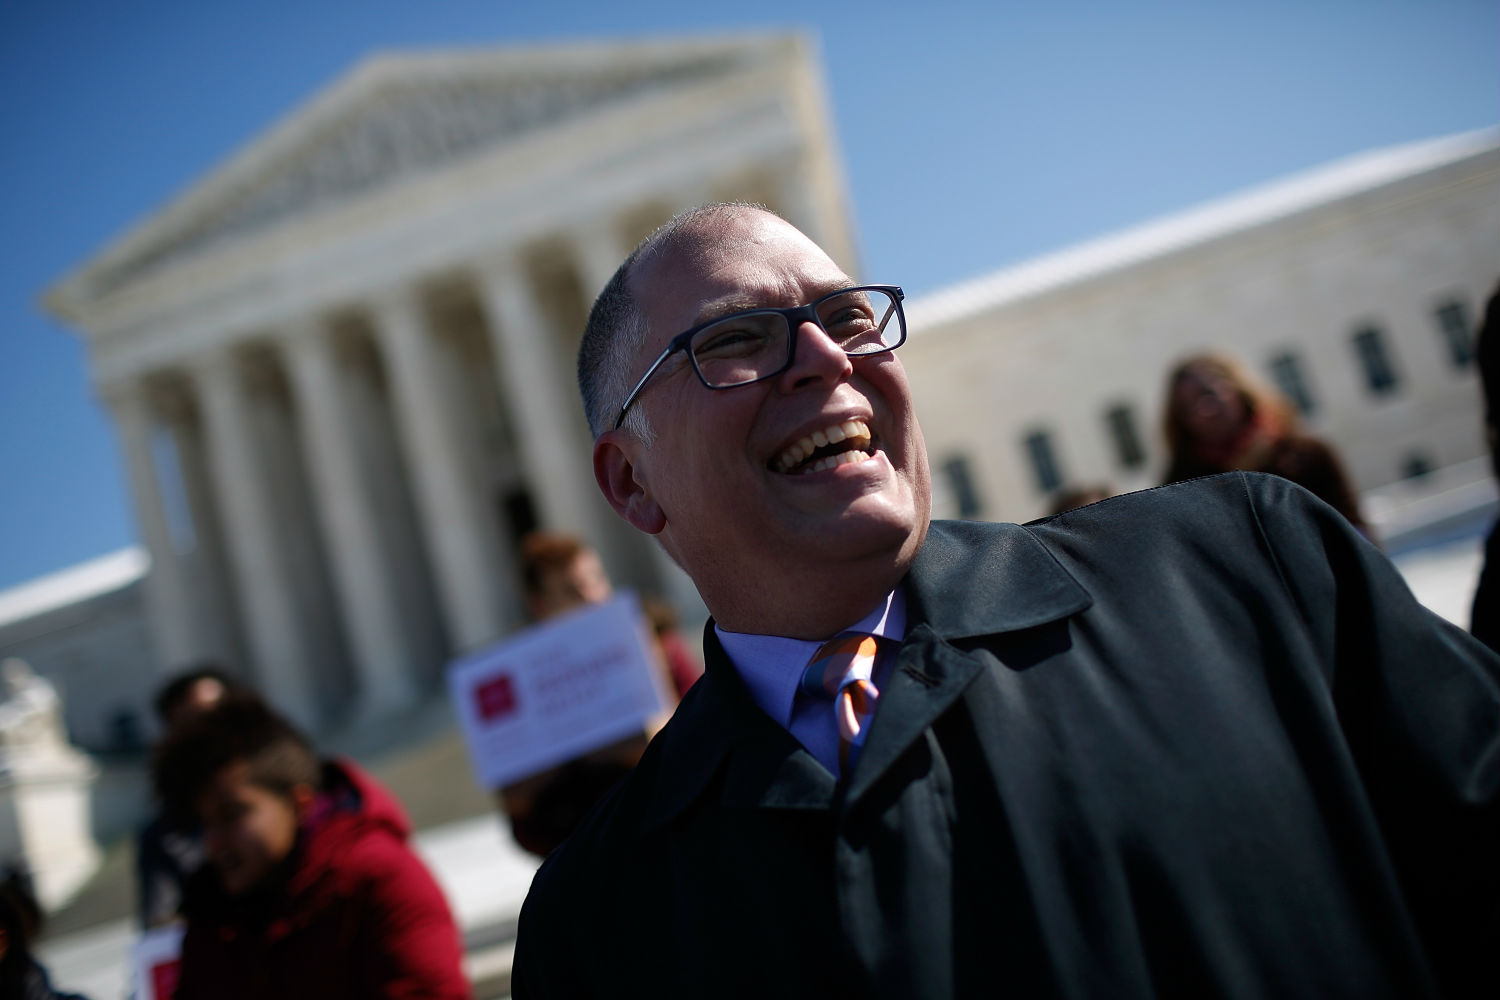 Jim Obergefell GettyImages-465378290